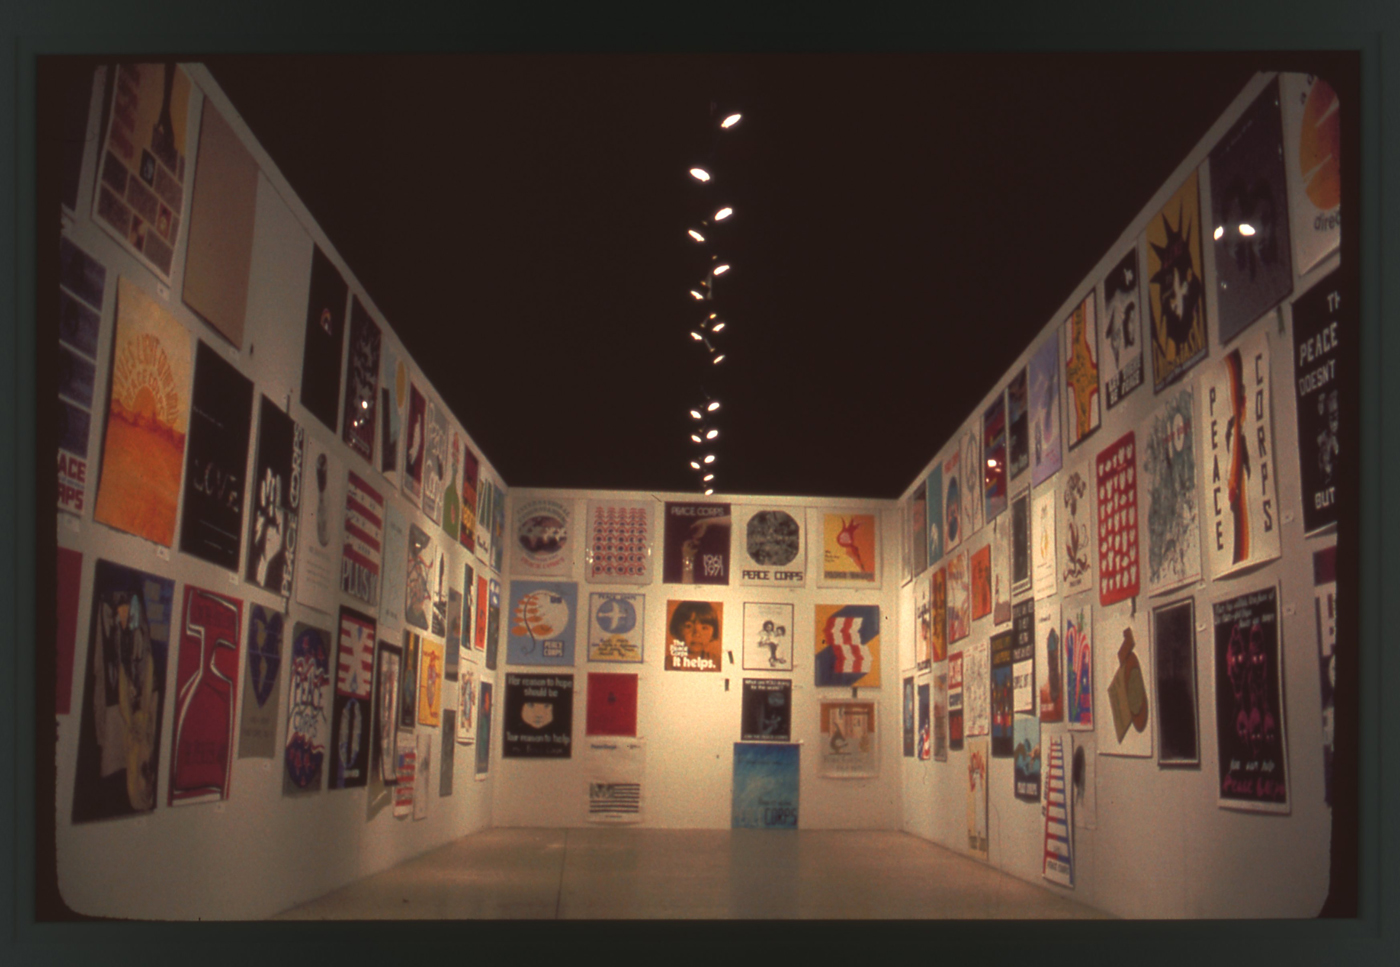 This is one section of the art show.